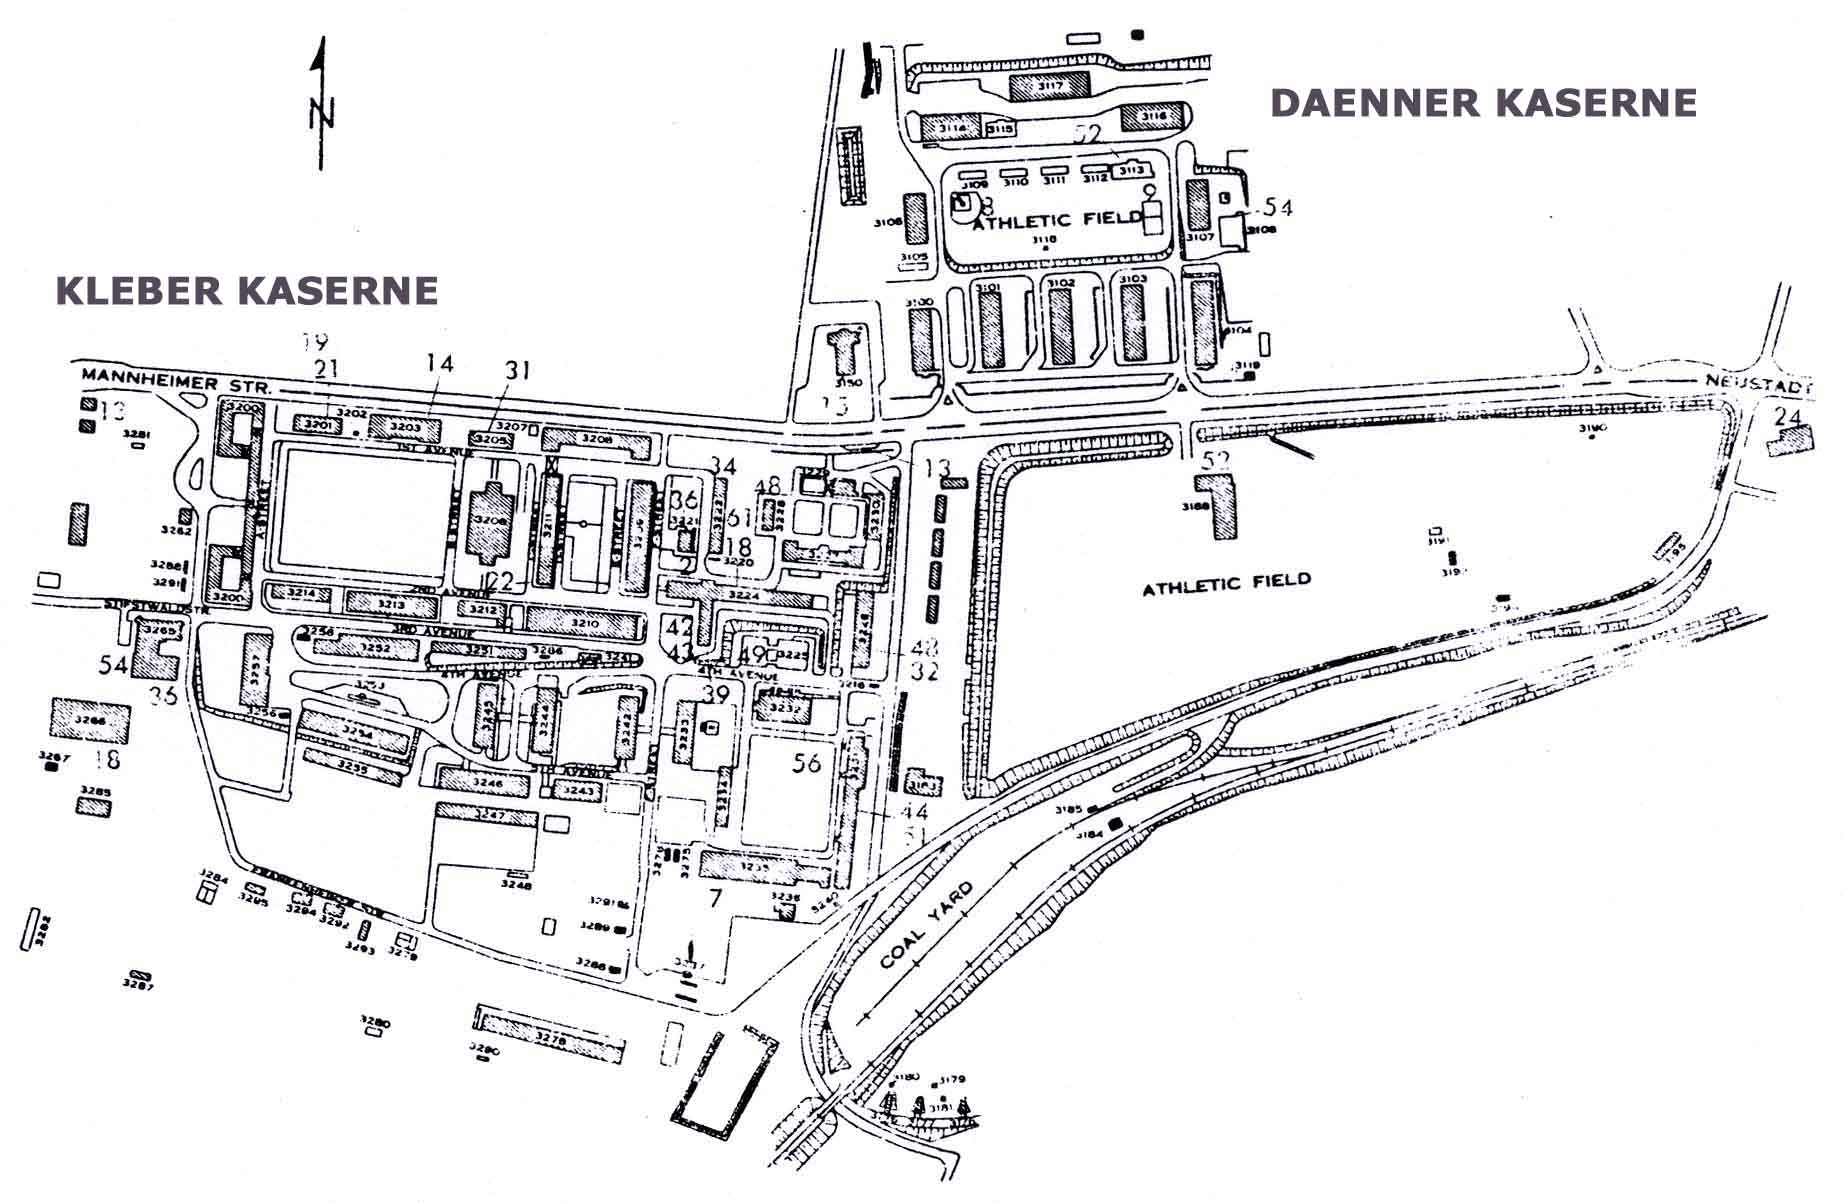 Usareur Installation Maps Kleber And Daenner Late 1970s